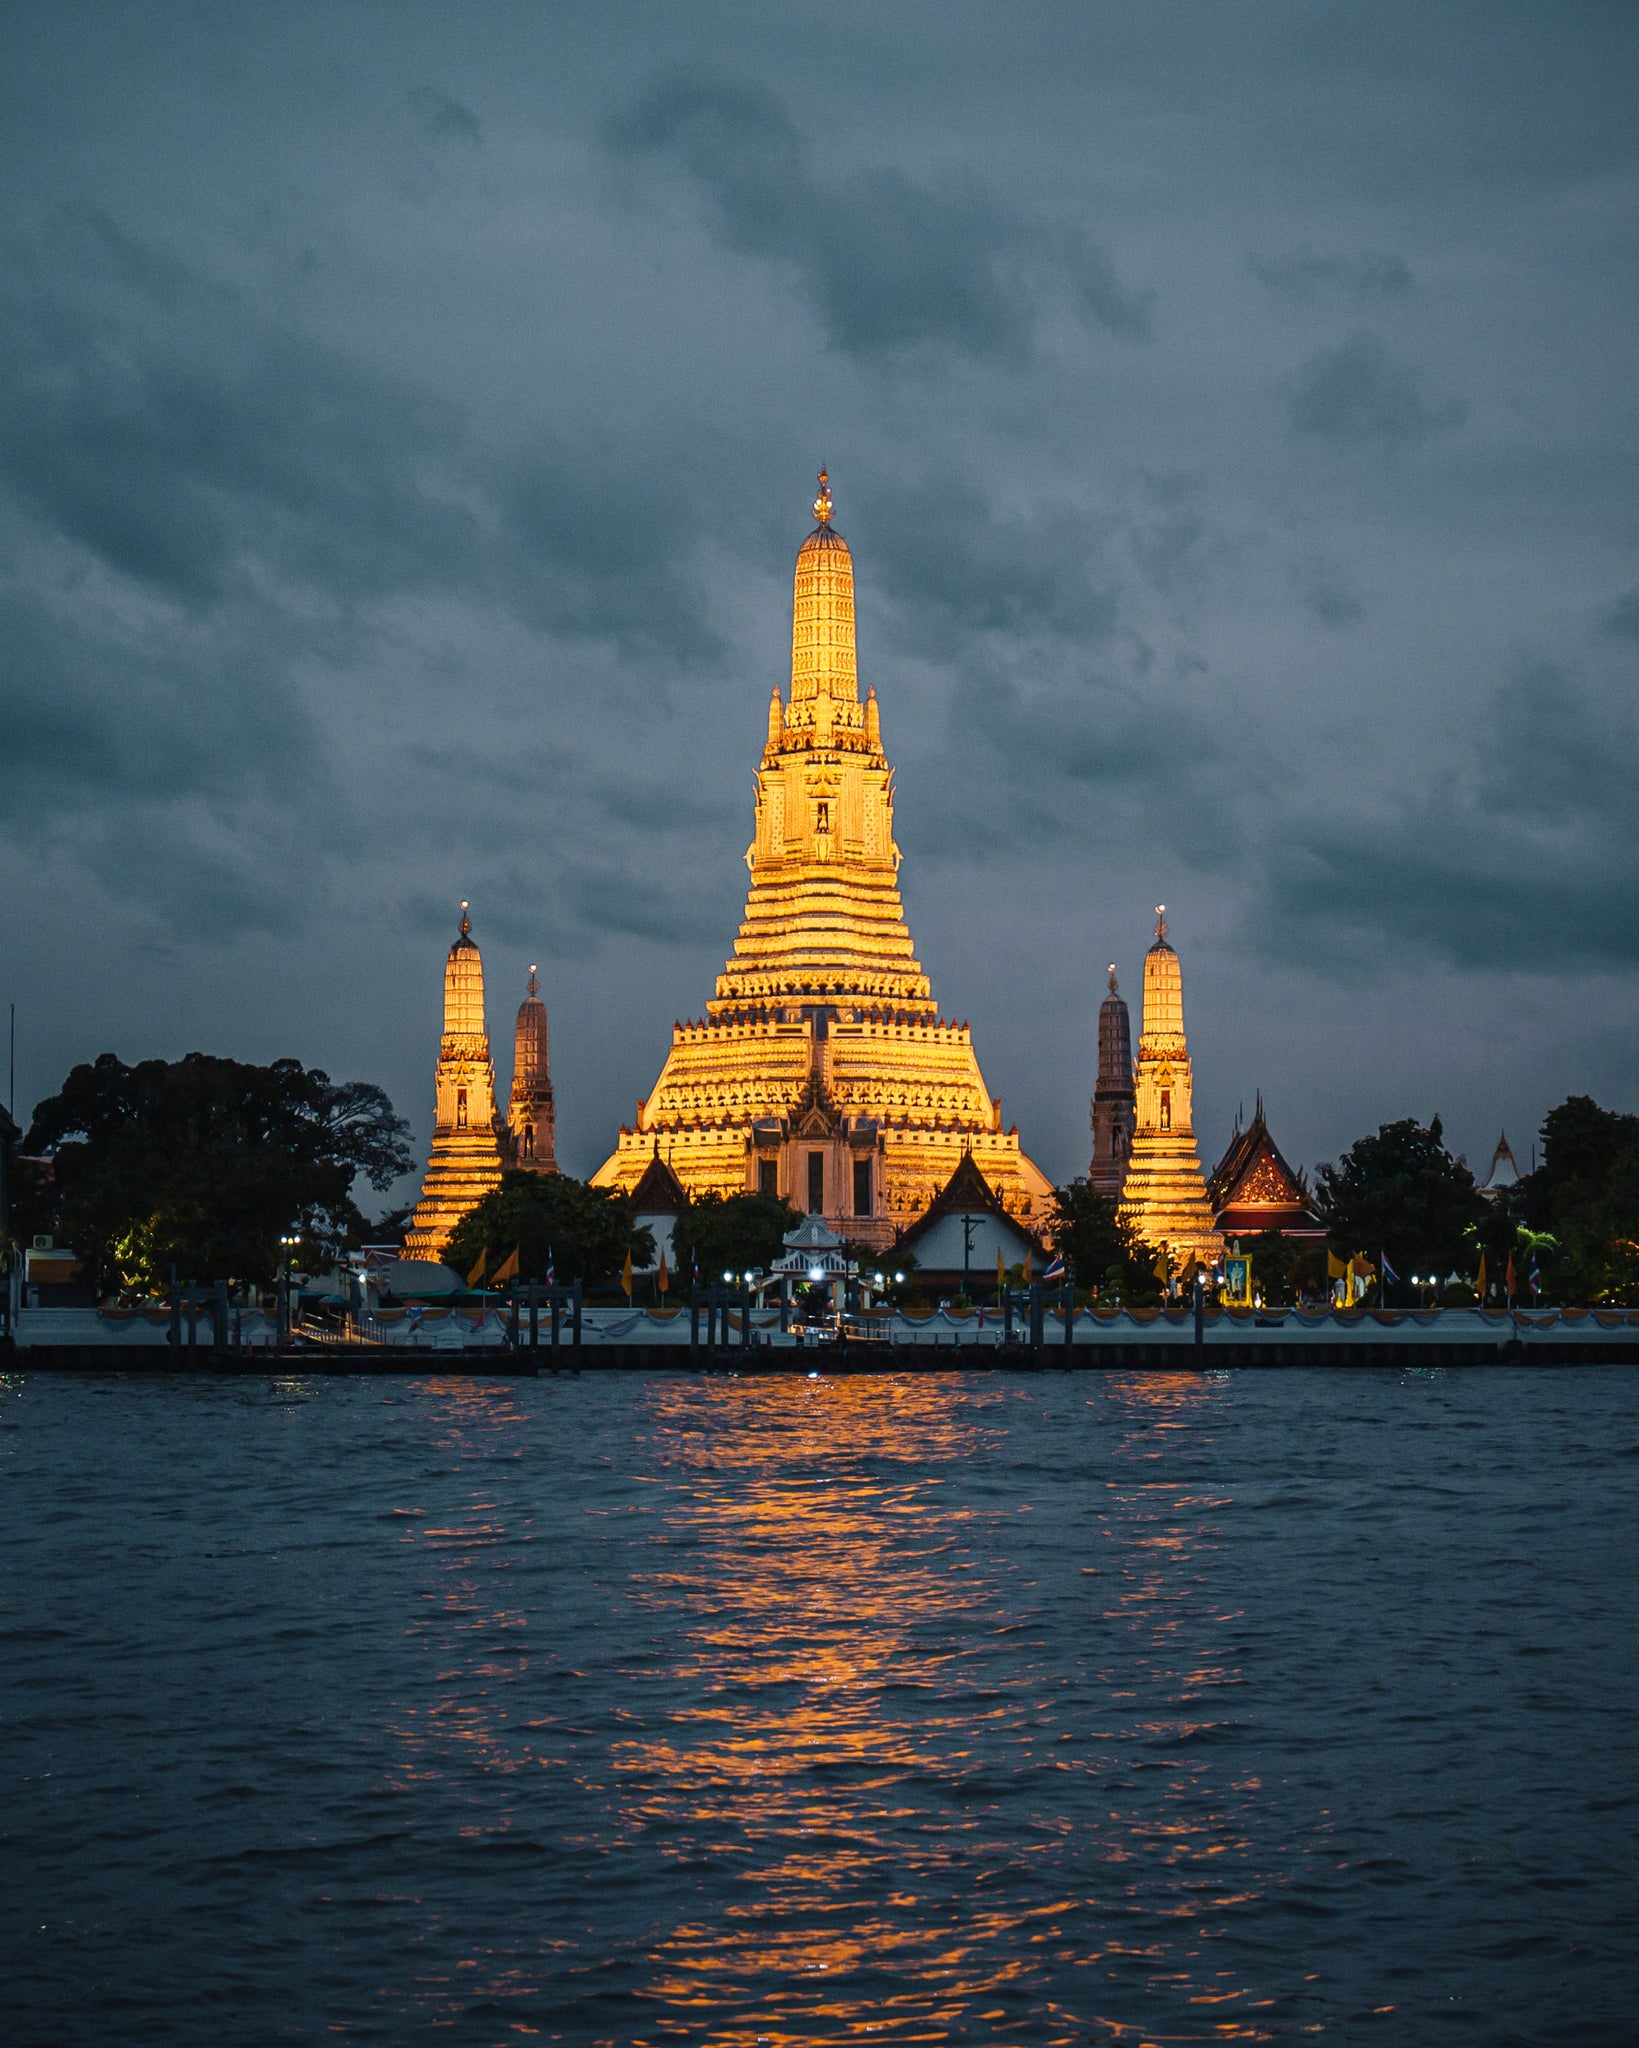 Wat Arun Temple by night, Bangkok, Thailand.